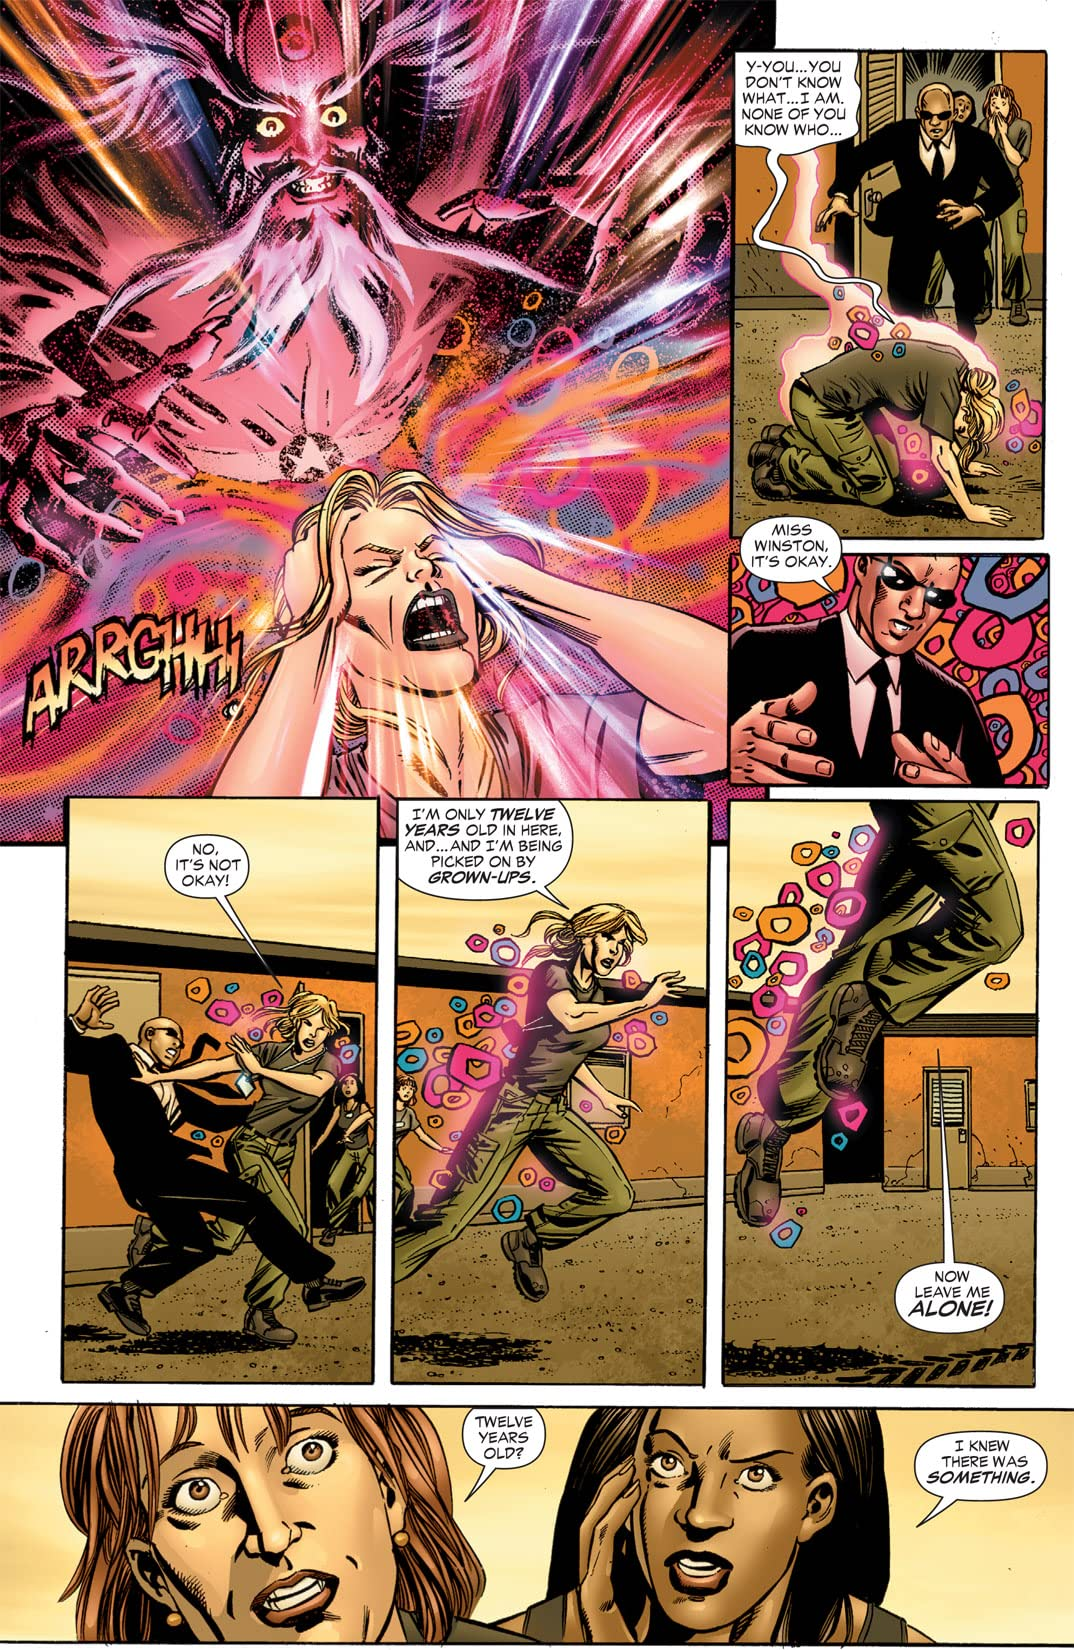 Flashpoint: Secret Seven #2 (of 3)